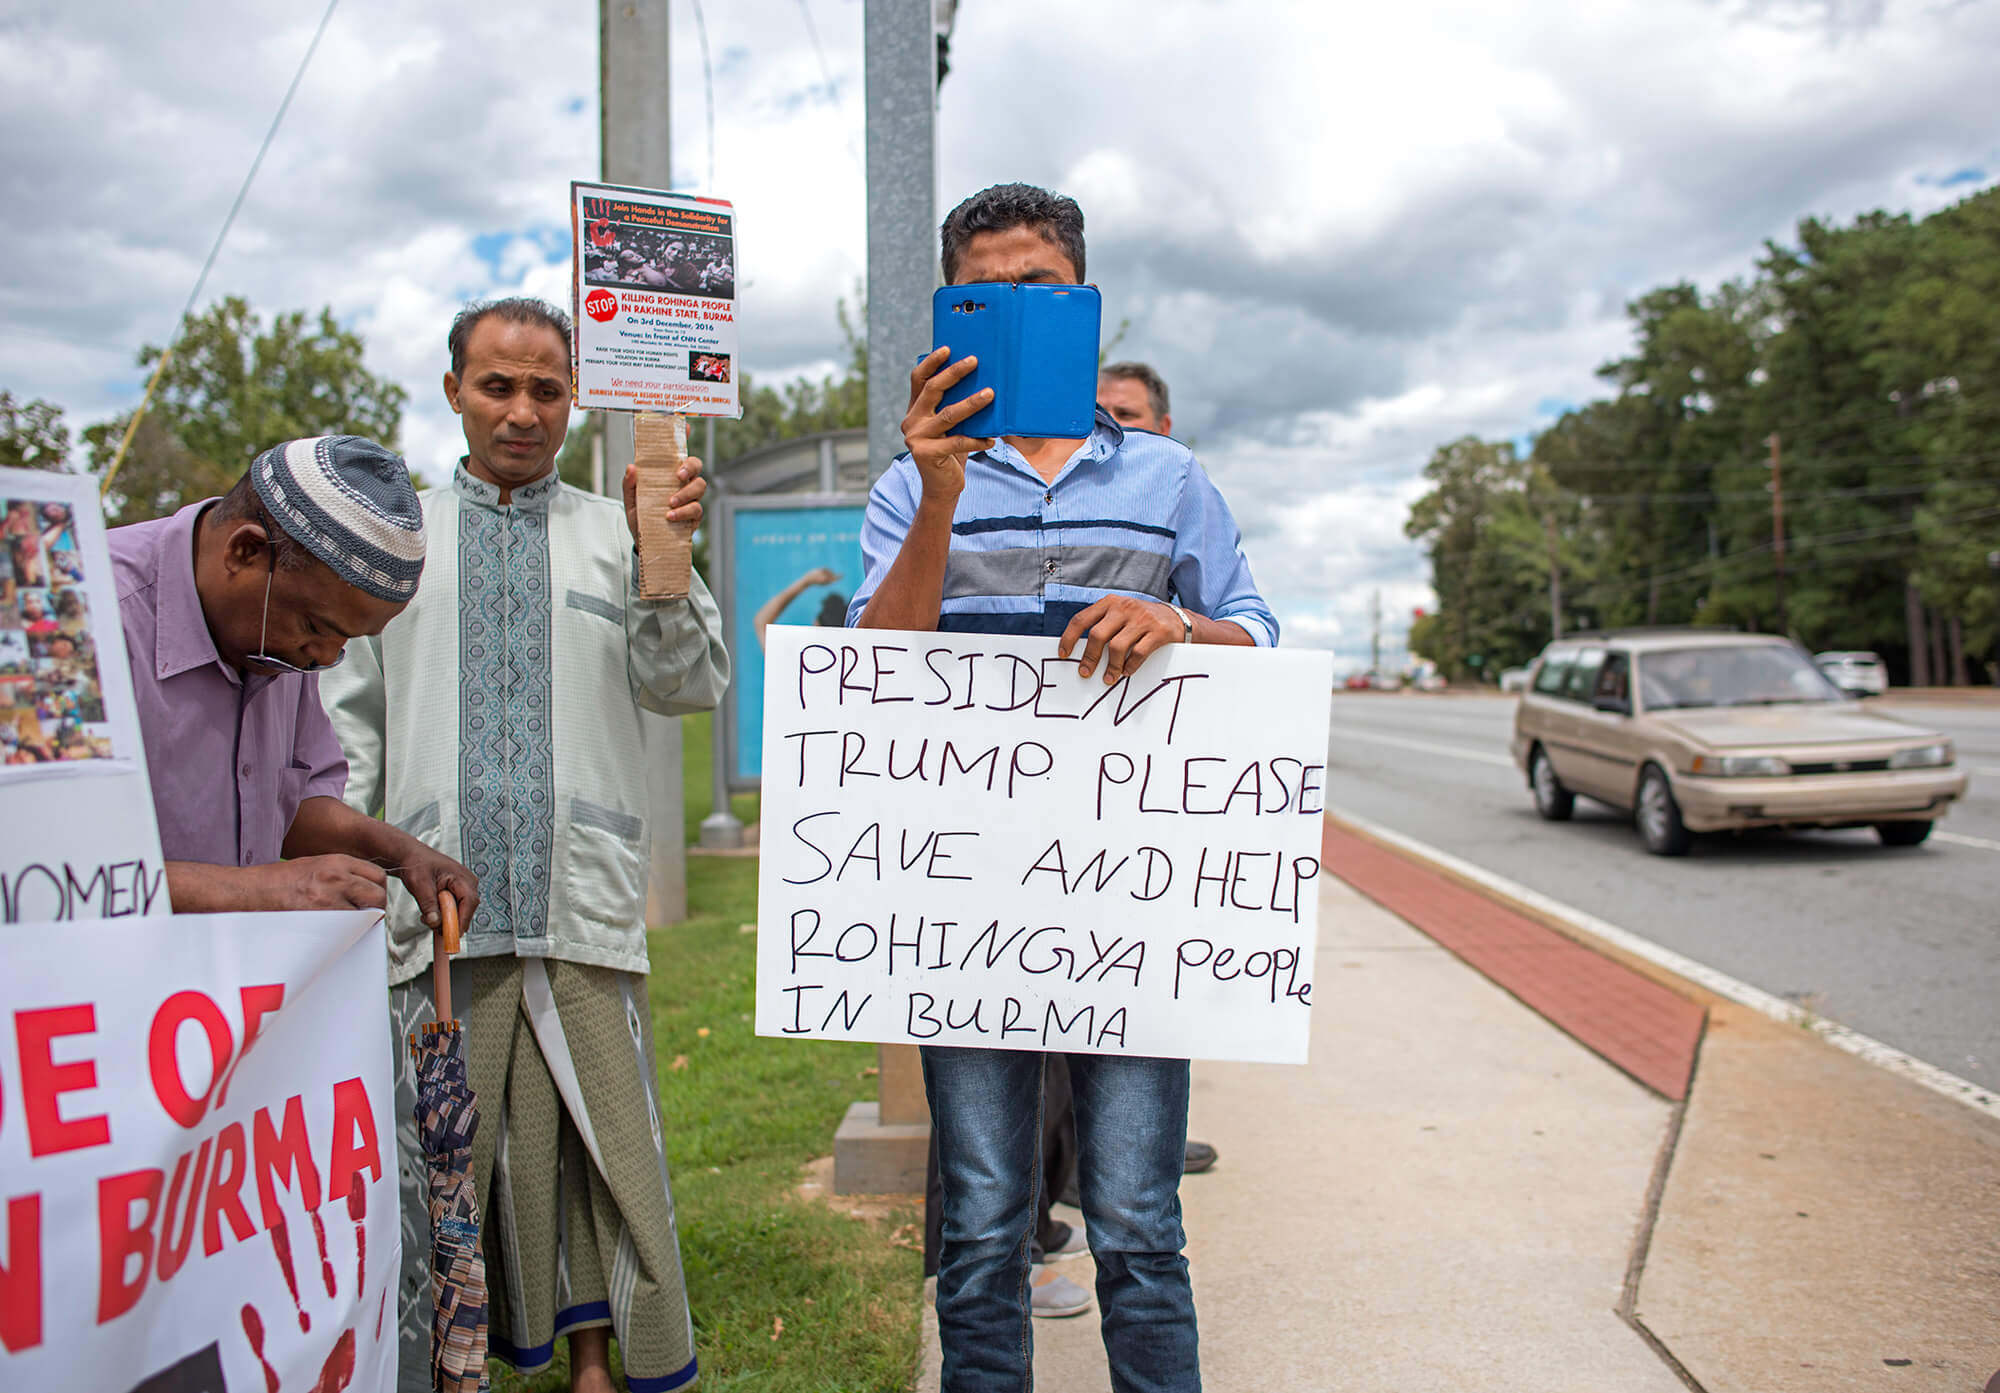 Rohingya refugees take part in a rally protesting the genocide of the Rohingya people in Burma. The rally, led by Clarkston Mayor Ted Terry, was held at Memorial Drive Presbyterian Church on September 1, 2017.